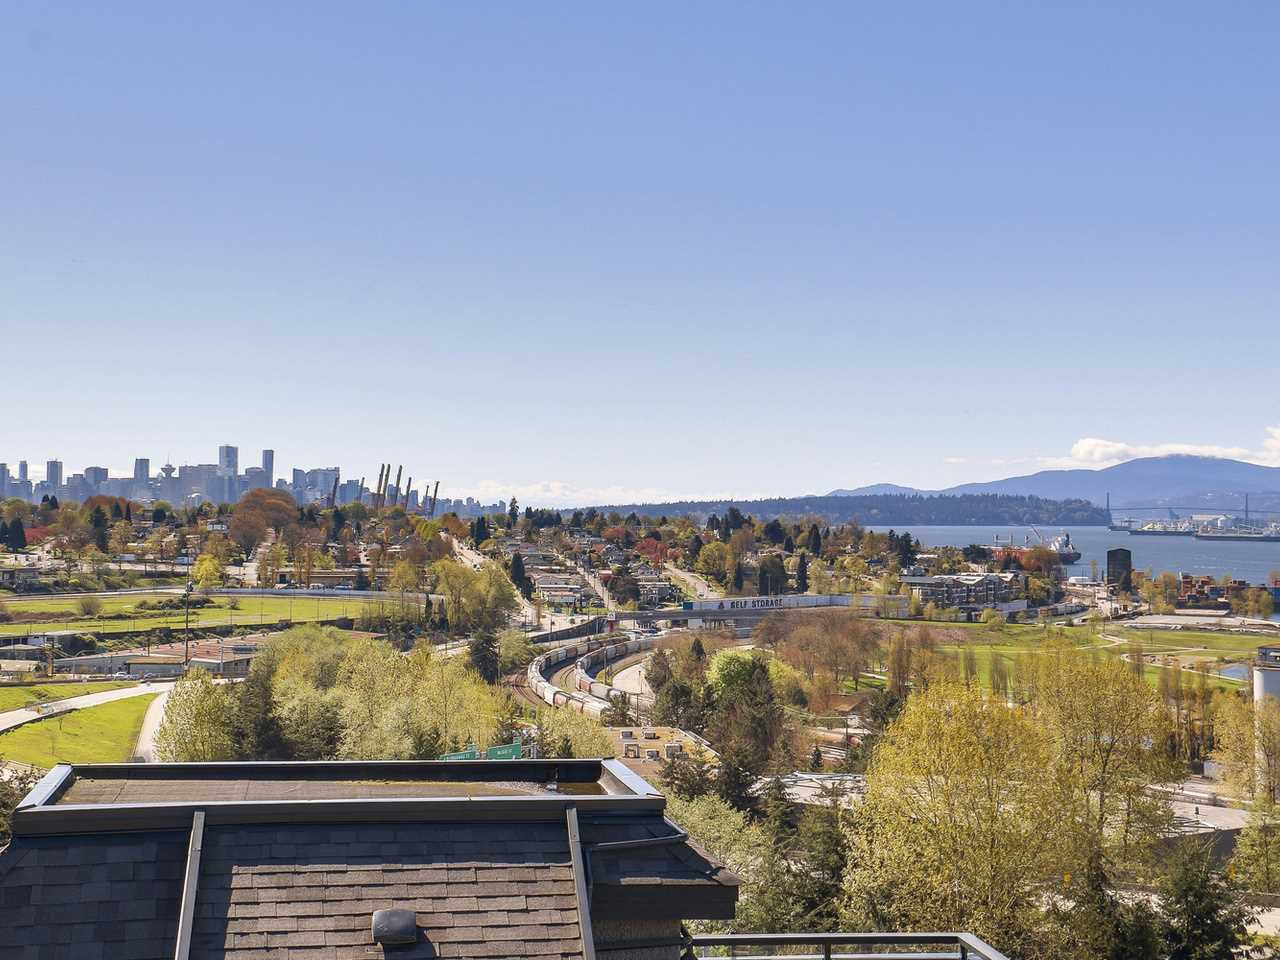 Photo 16: Photos: 3539 ETON STREET in Vancouver: Hastings East House for sale (Vancouver East)  : MLS®# R2159493